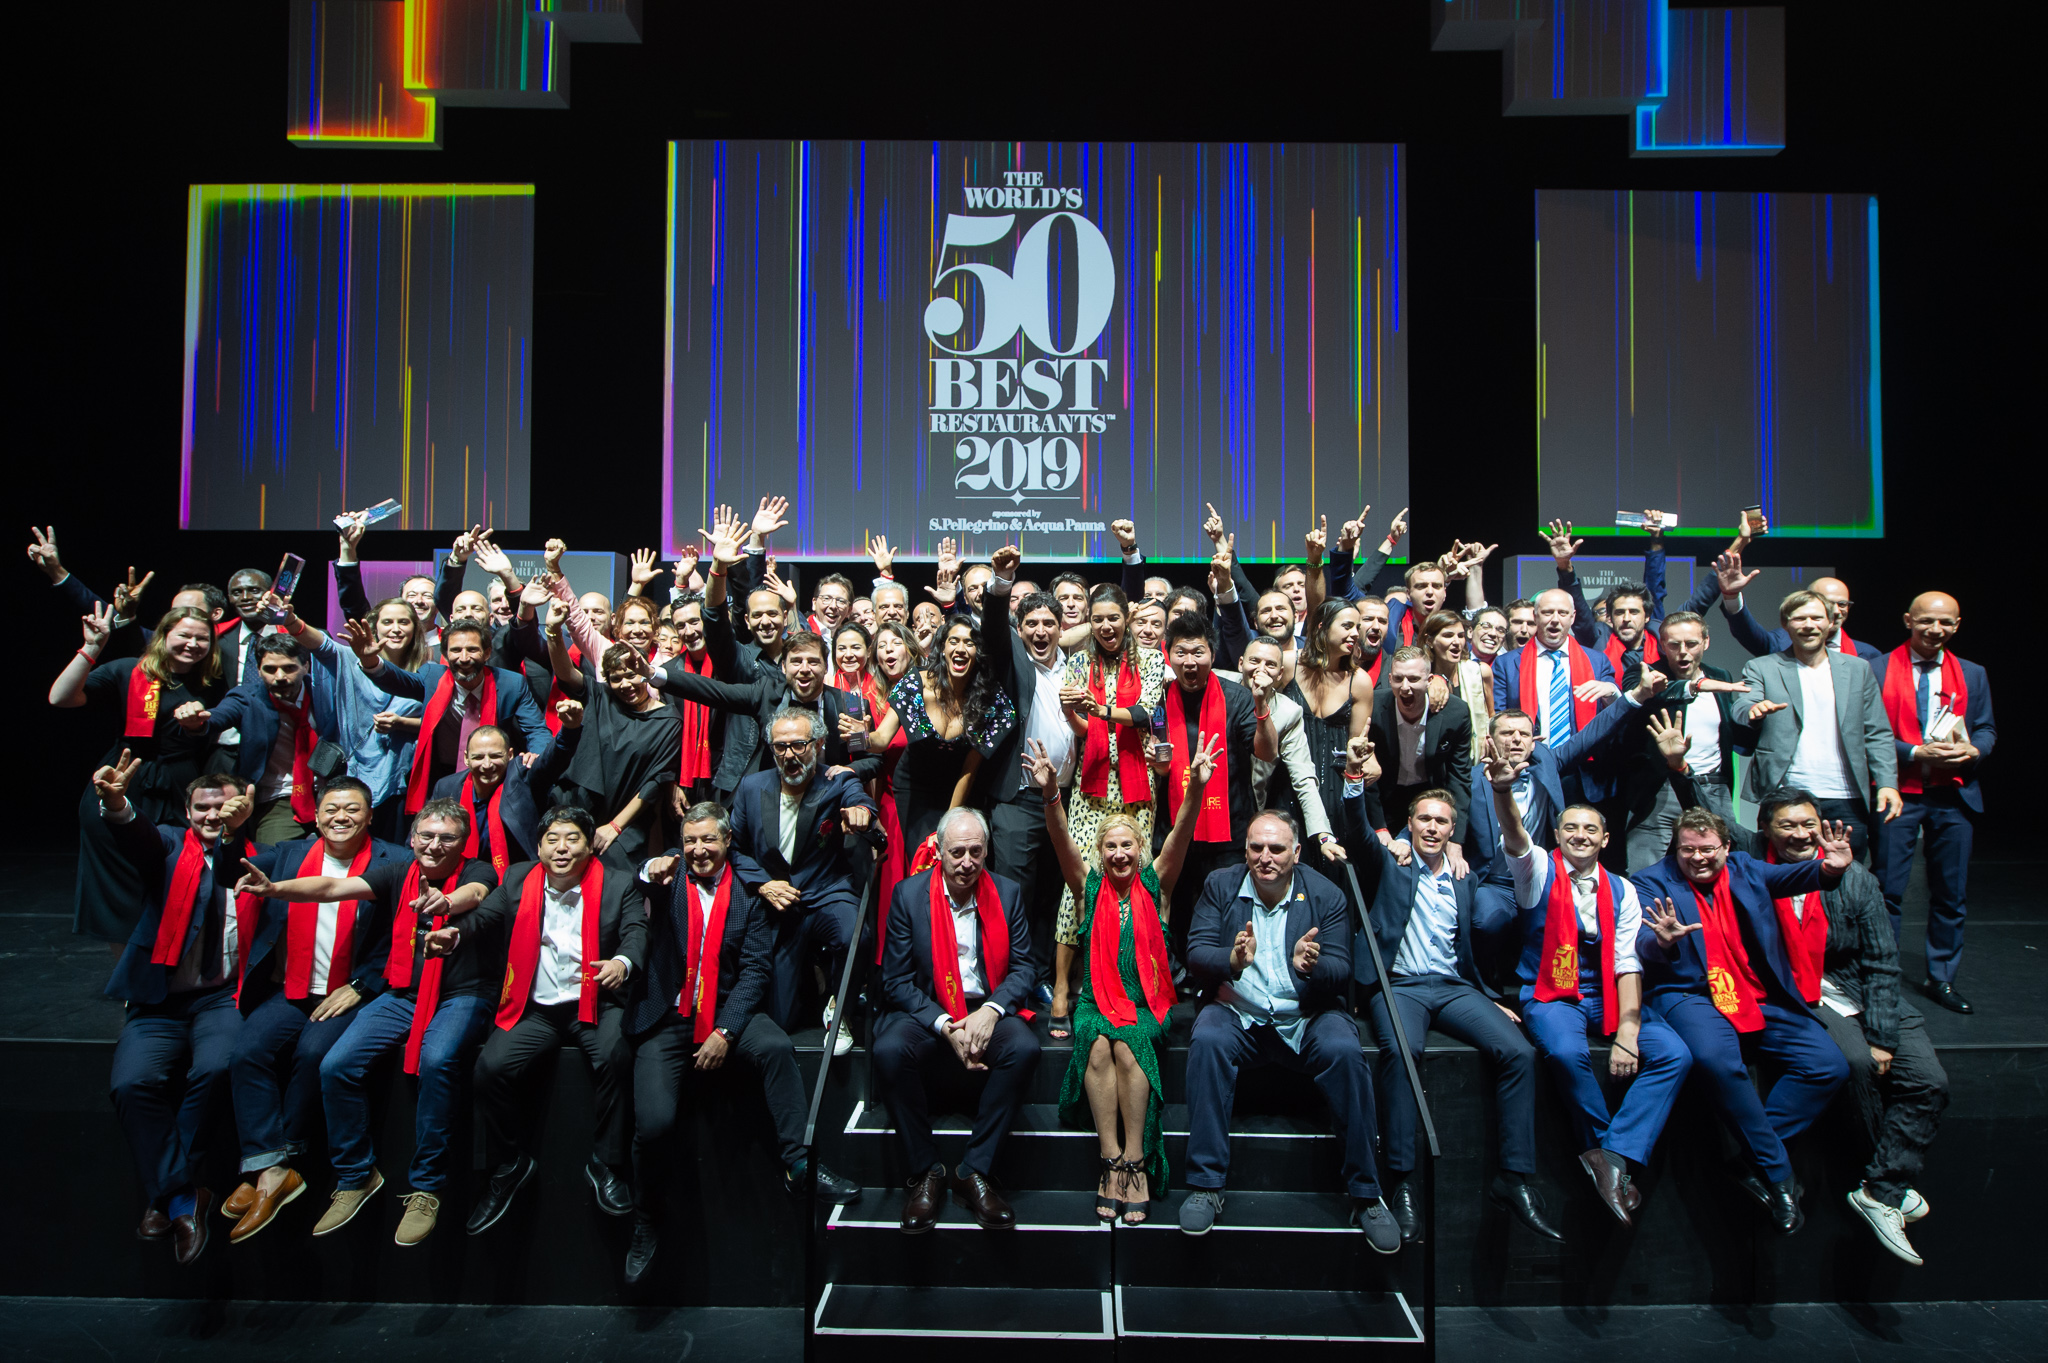 The World\\\\\\\\\\\\\\\\\\\\\\\\\\\\\\\'S 50 Best Restaurants 2019 The World's 50 Best Restaurants 2019: The Chairman debuts at No